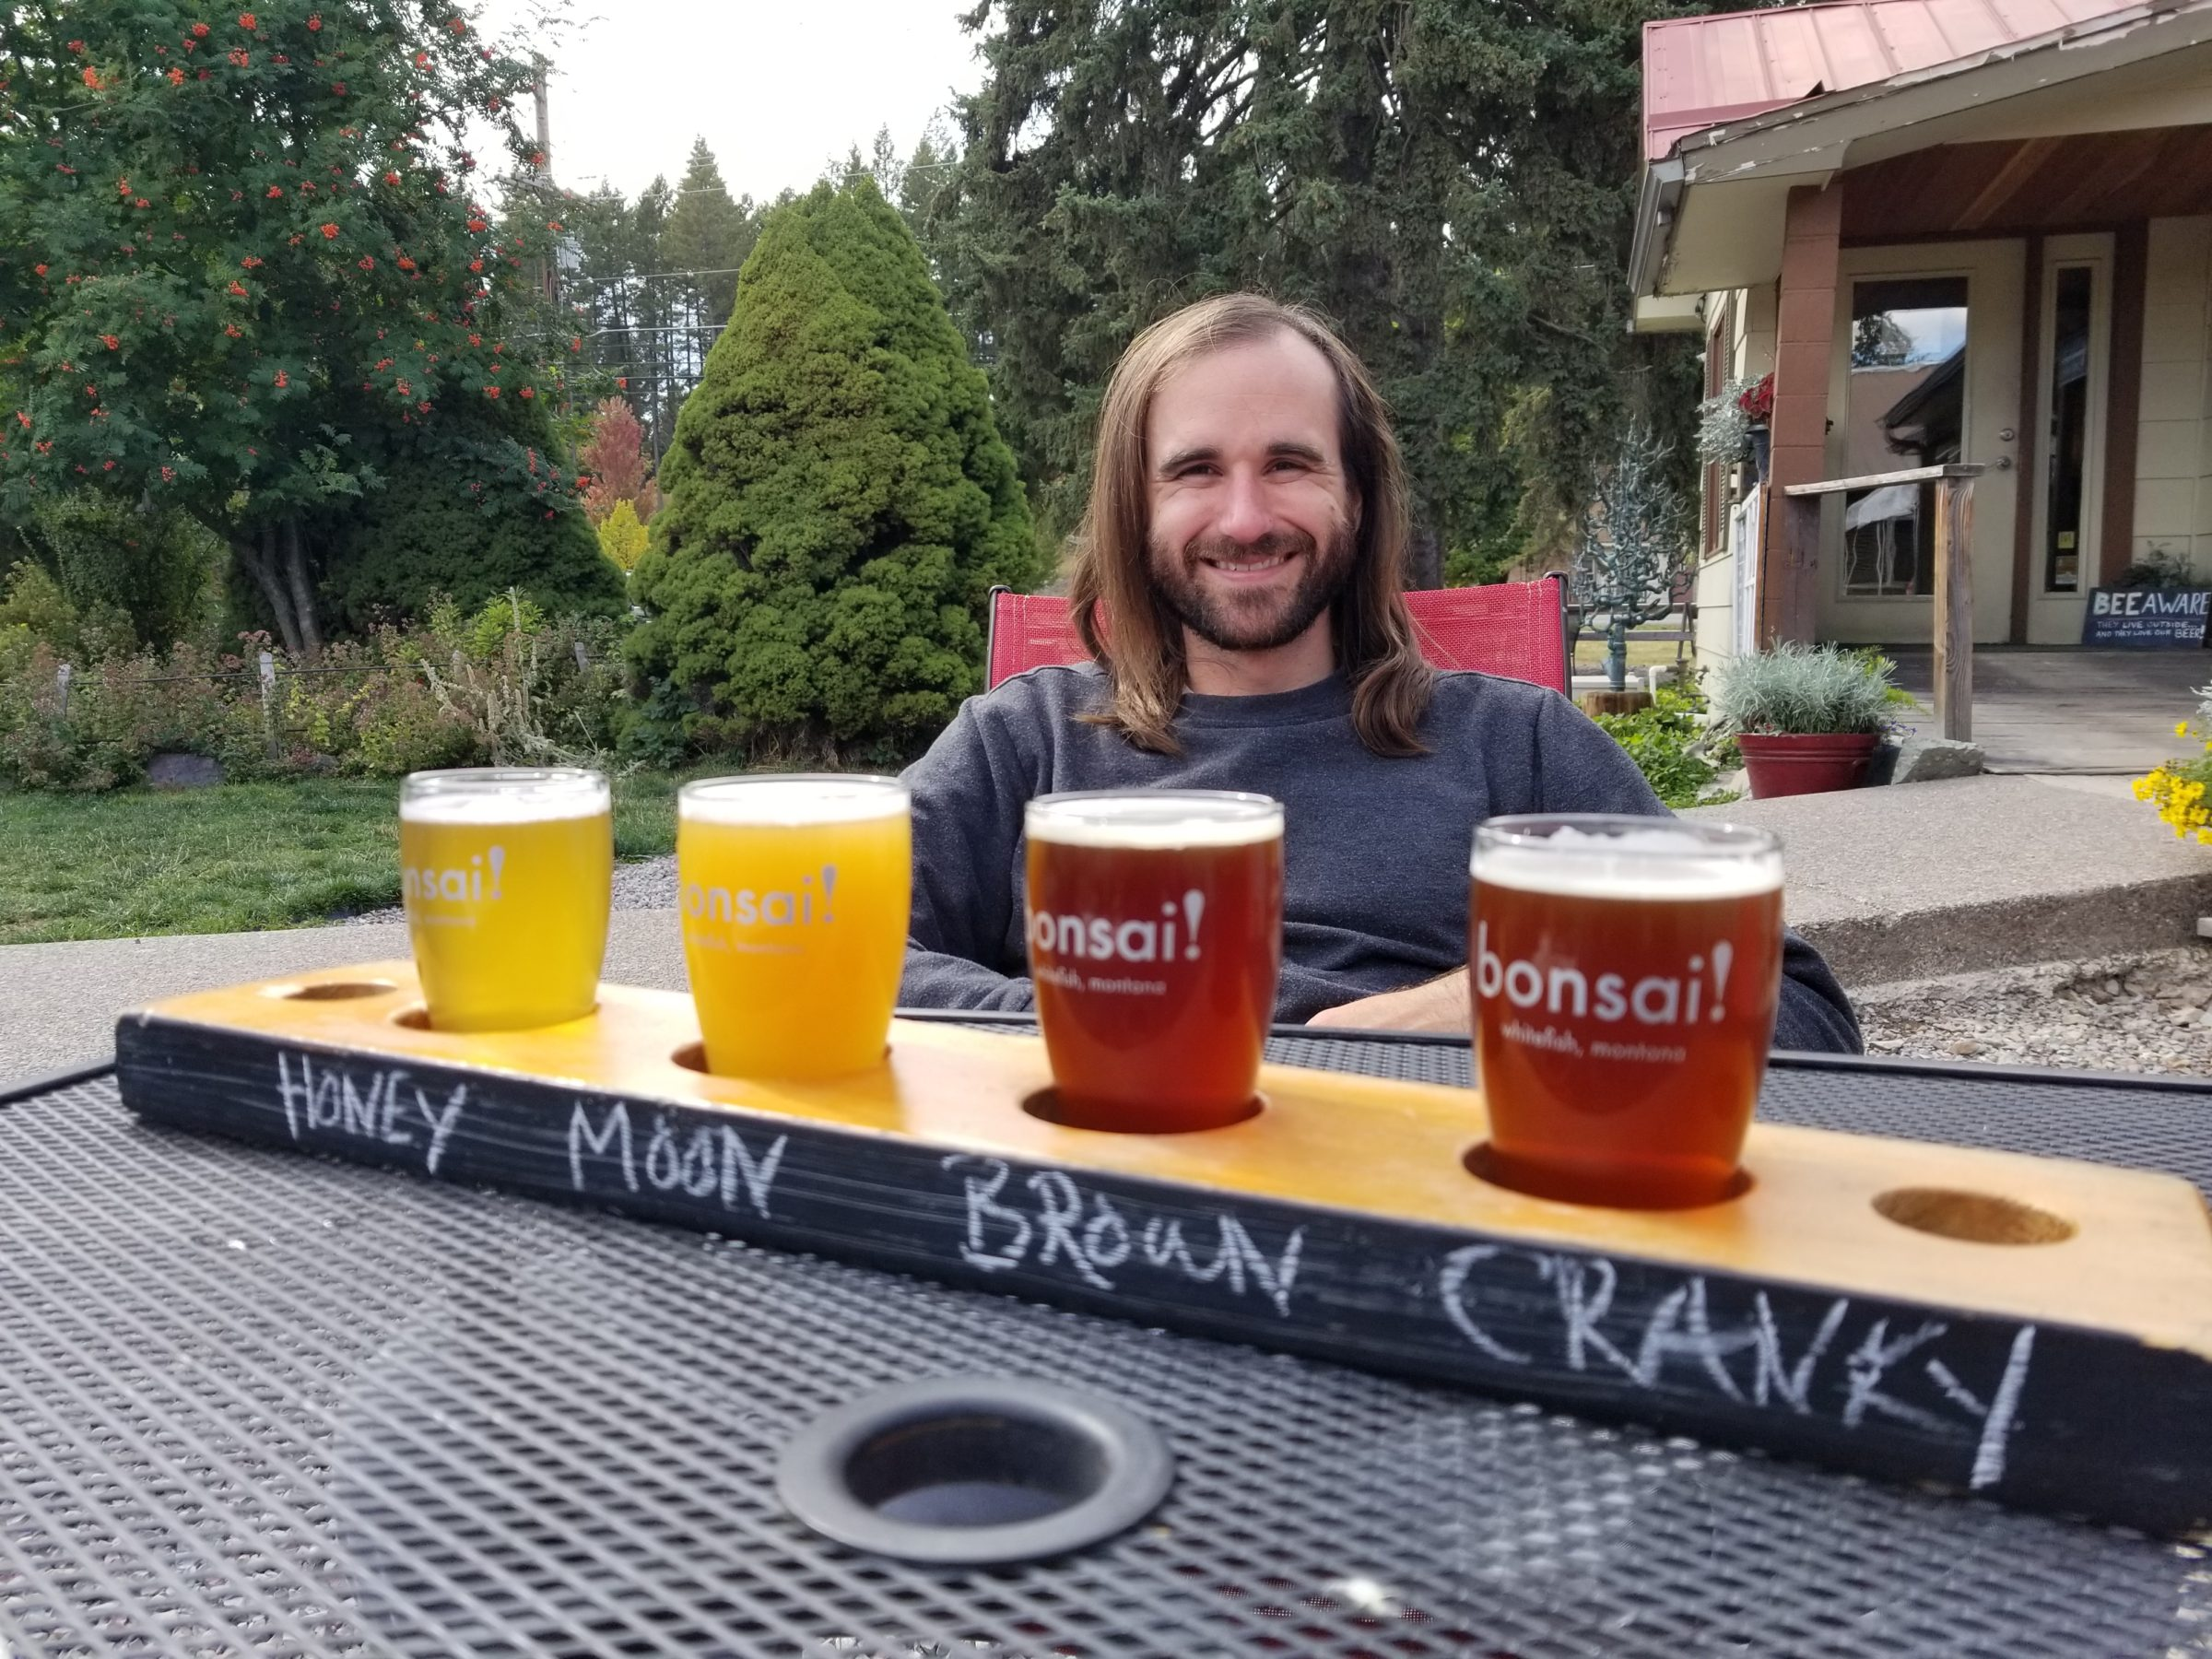 Try a Cranky Sheriff at Bonsai Brewing project, a brewery in Whitefish, Montana.